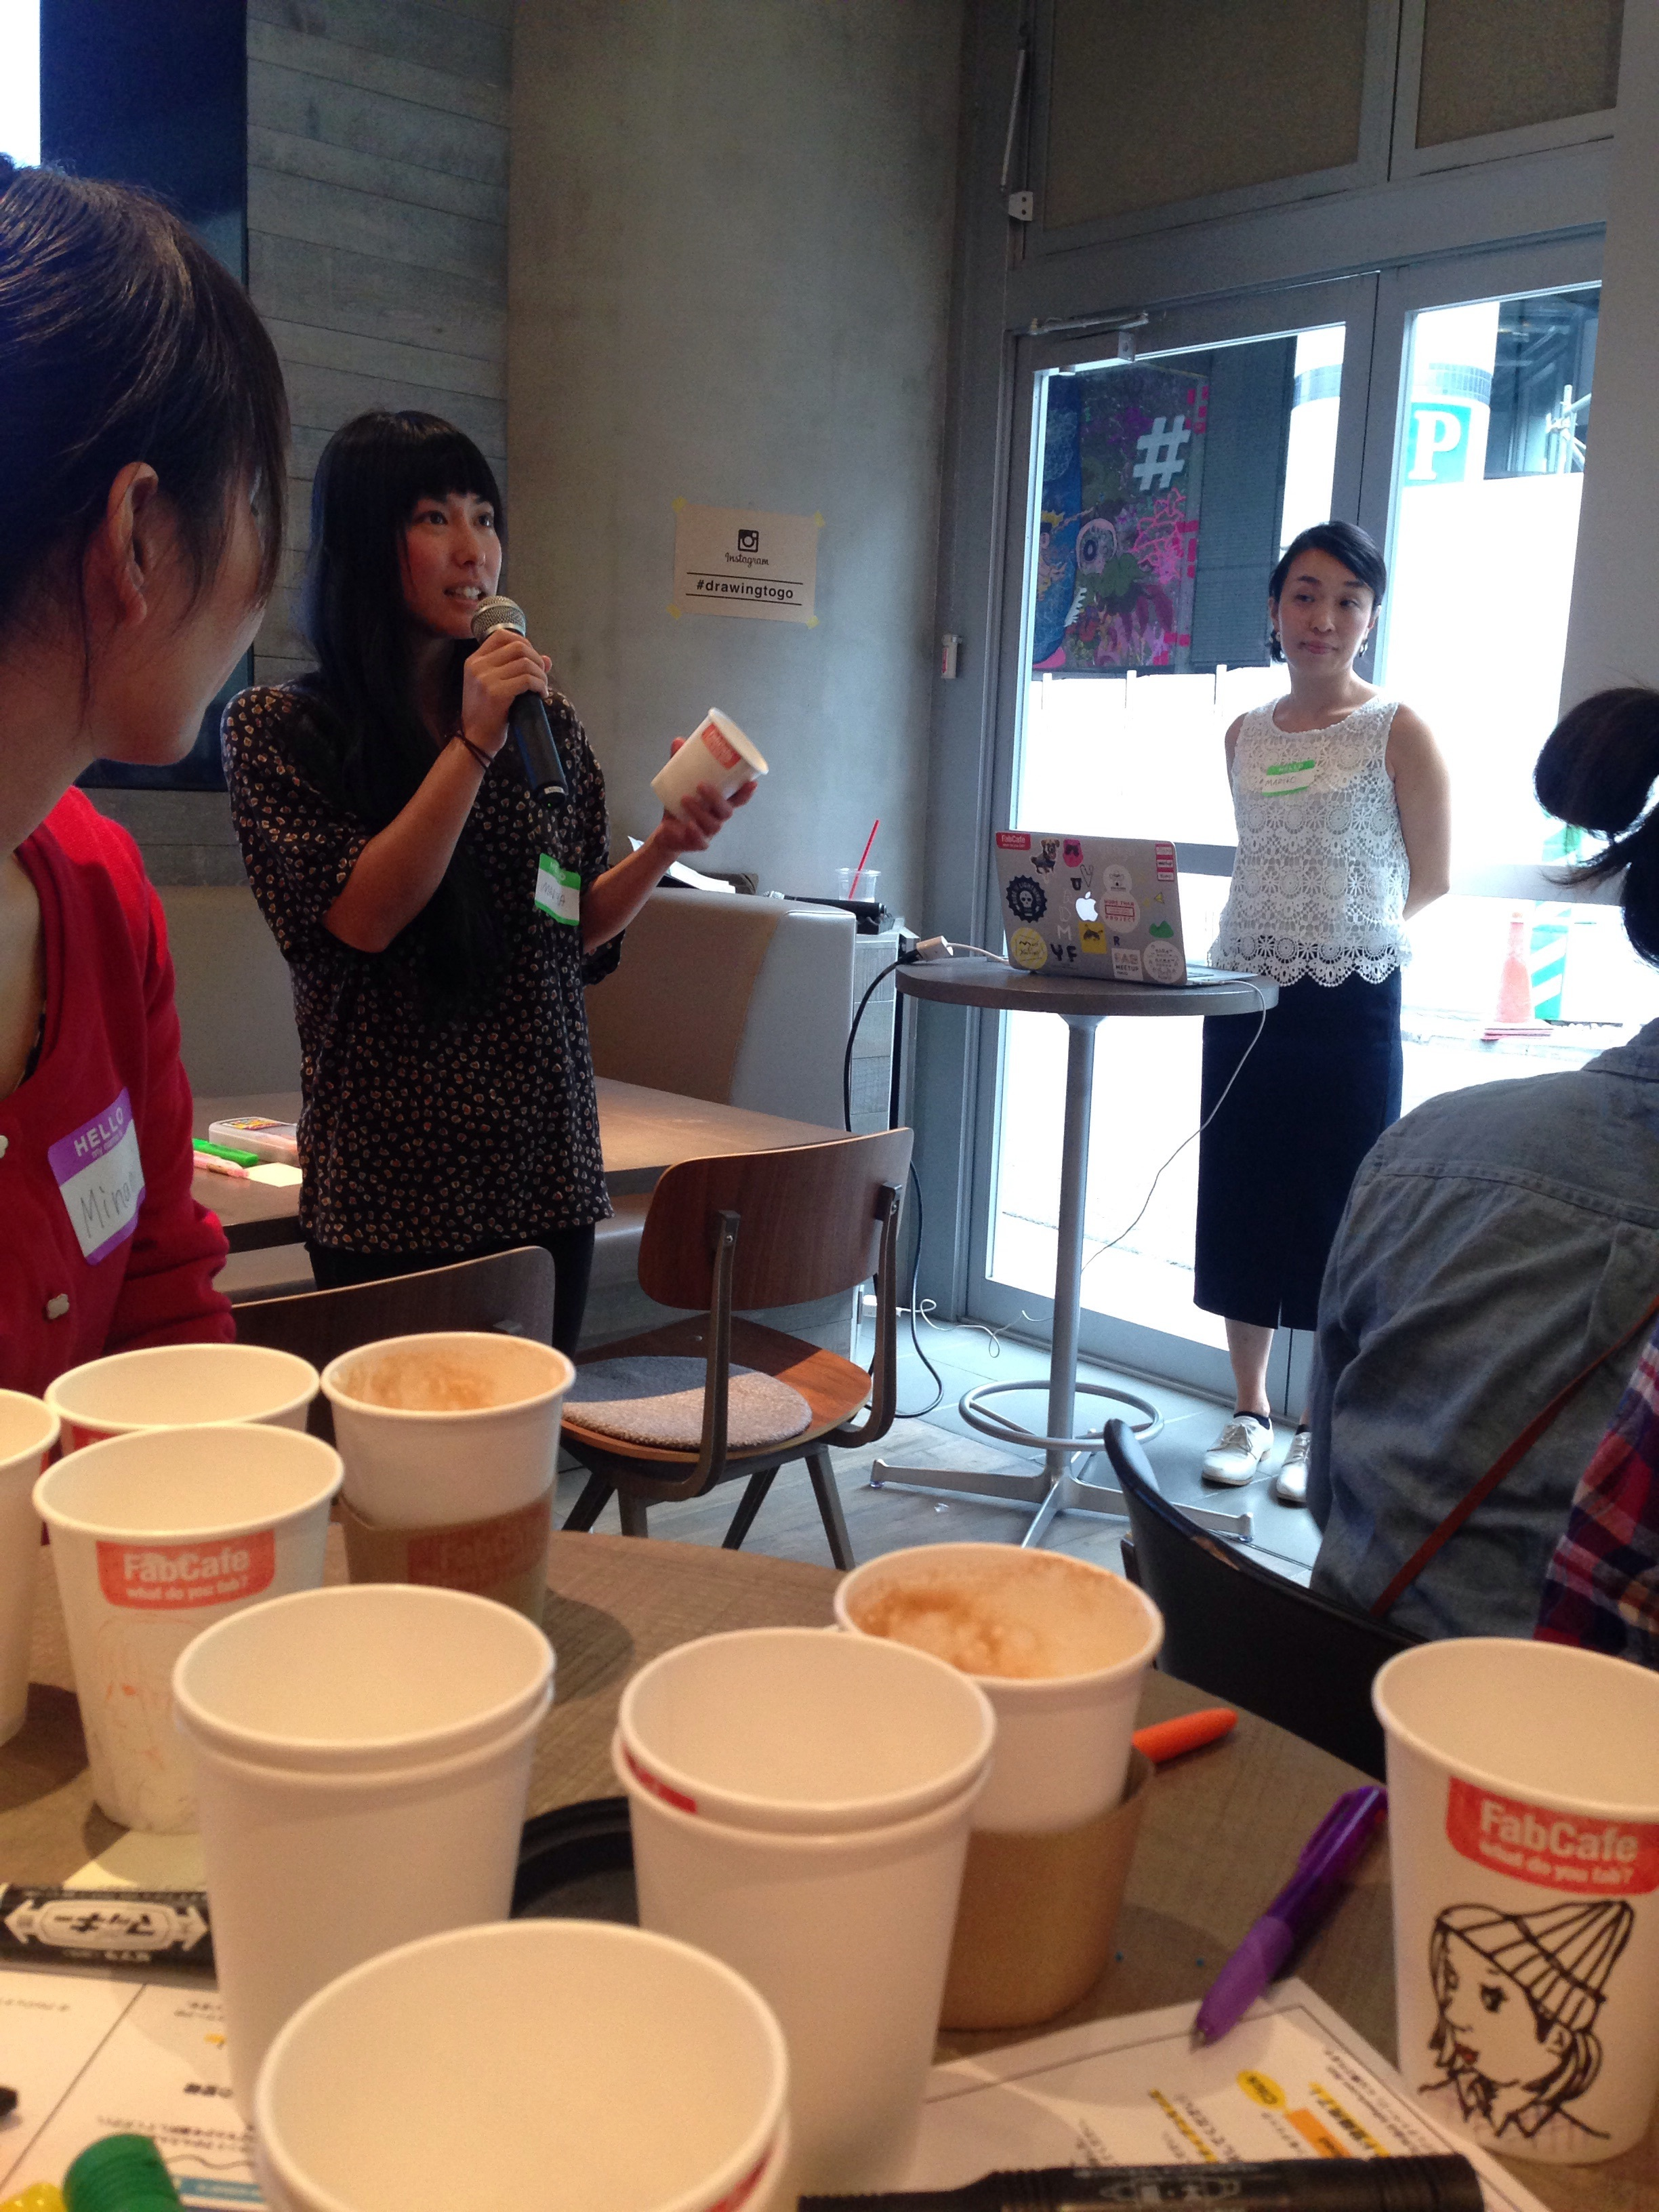 Mariya Suzuki on how she started drawing on coffee cups.